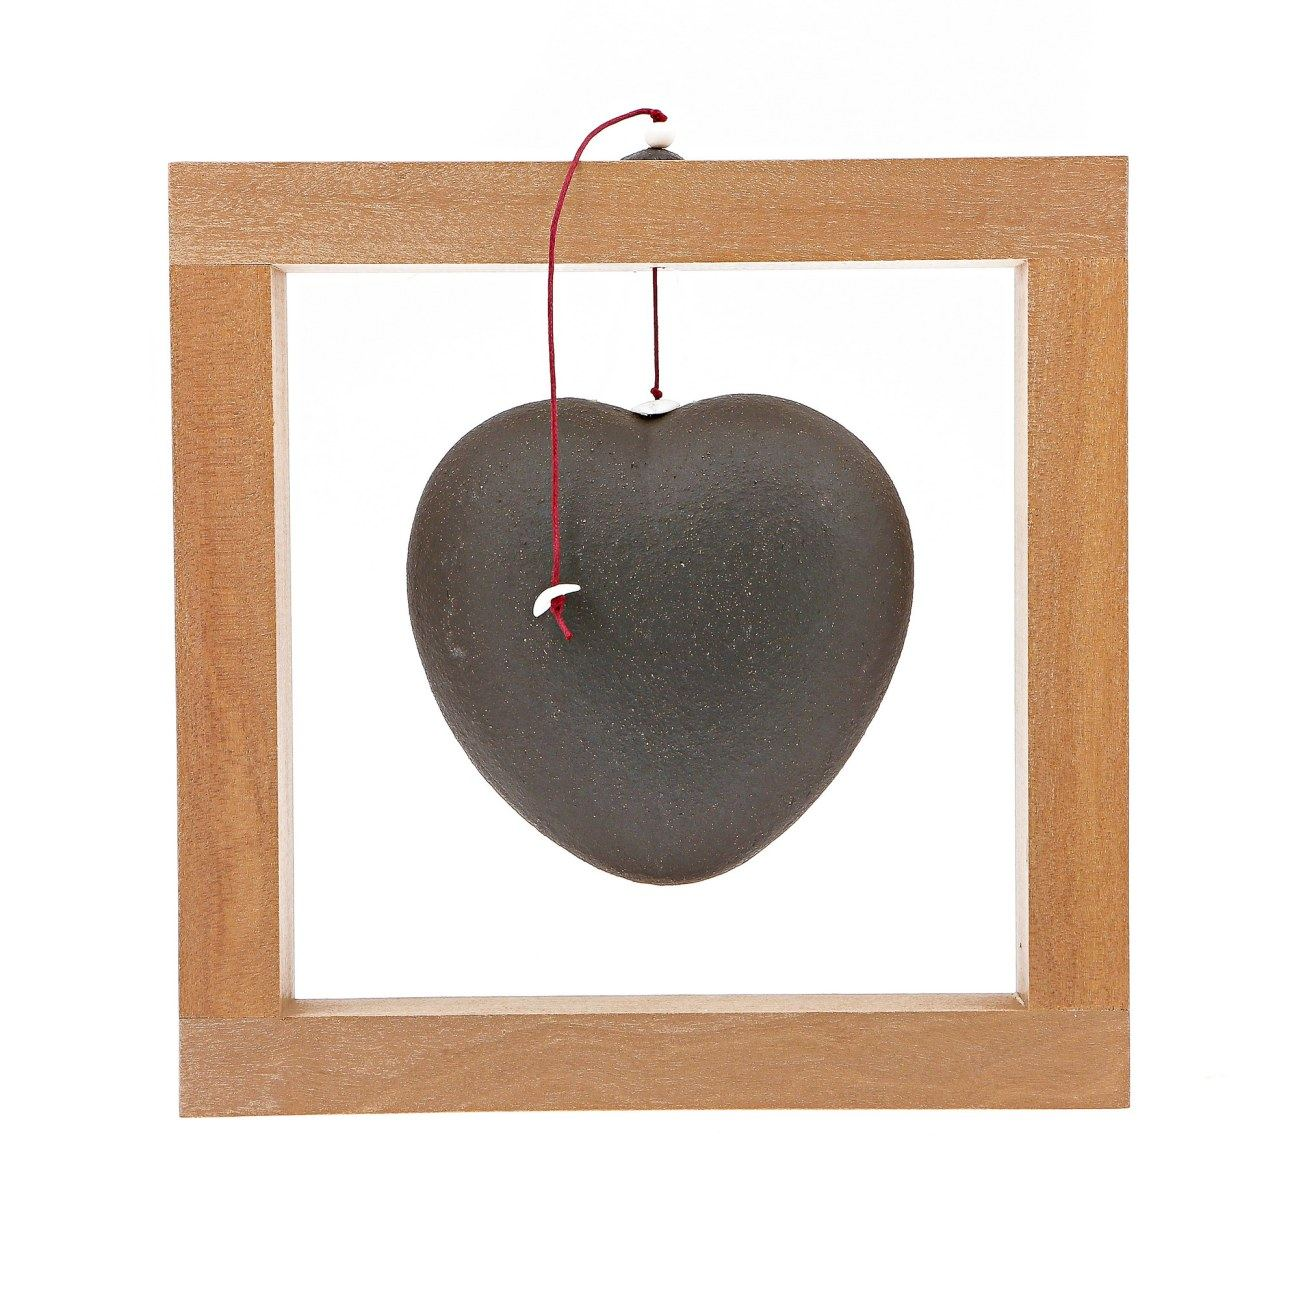 Modern Love Heart Handmade Ceramic Wood Framed Art Decor Black Large 8x8 20x20cm